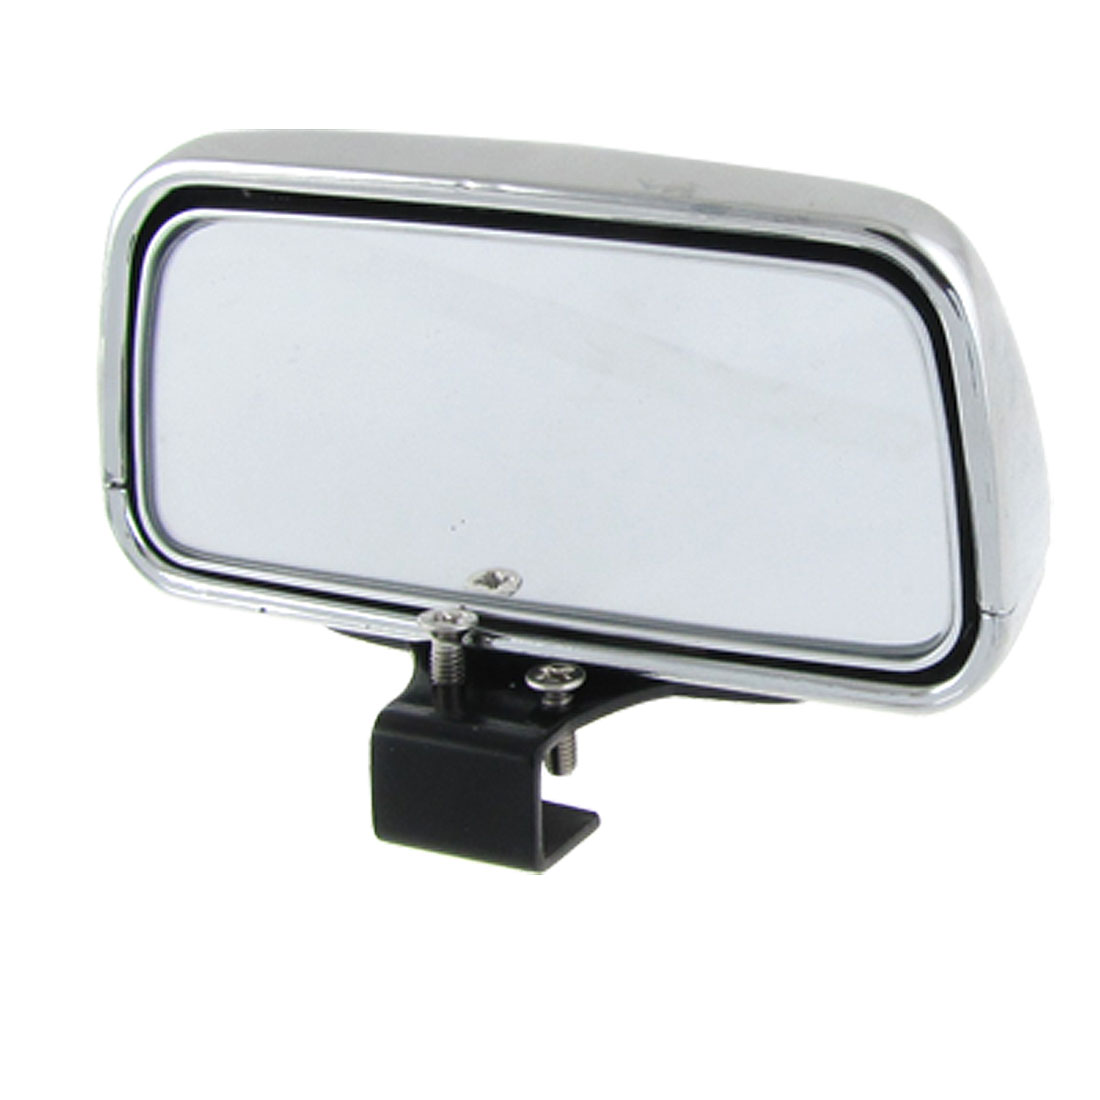 Car Auto Vehicle Auxiliary Rear View Blind Spot Mirror Silver Tone